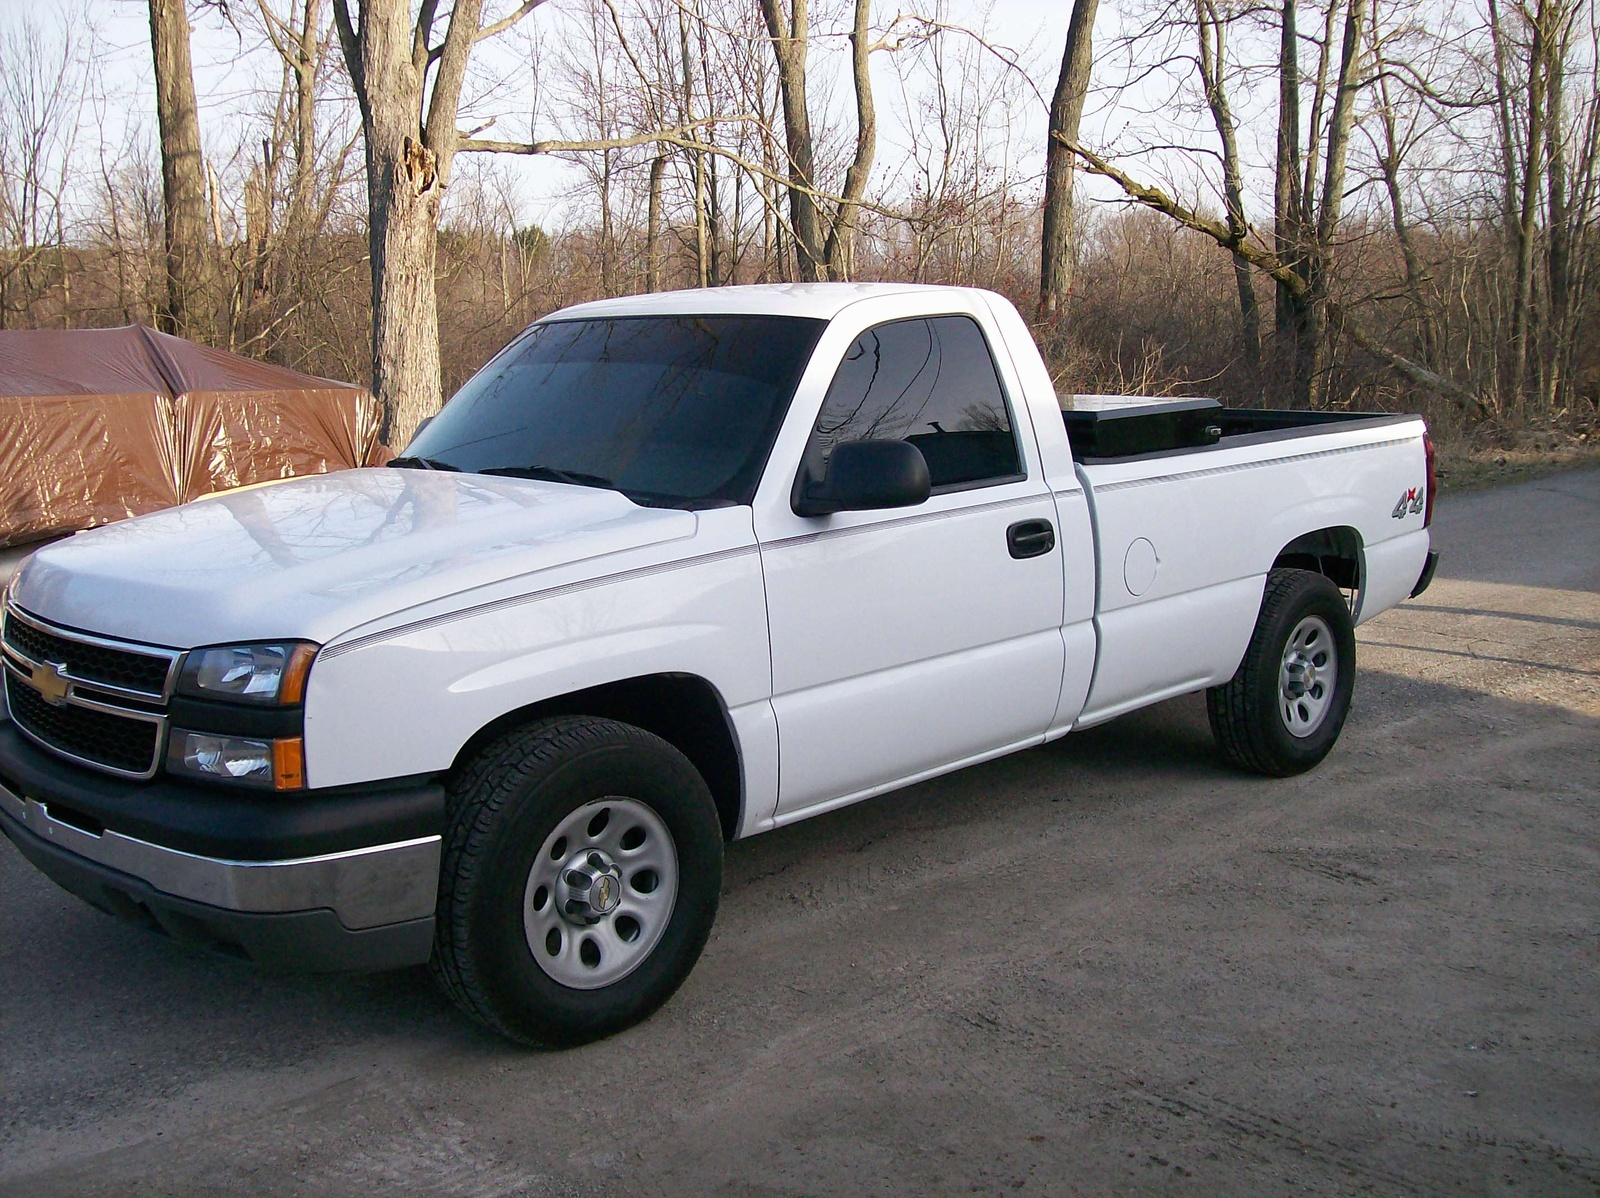 2006 chevrolet silverado 1500 work truck 4wd picture exterior. Cars Review. Best American Auto & Cars Review